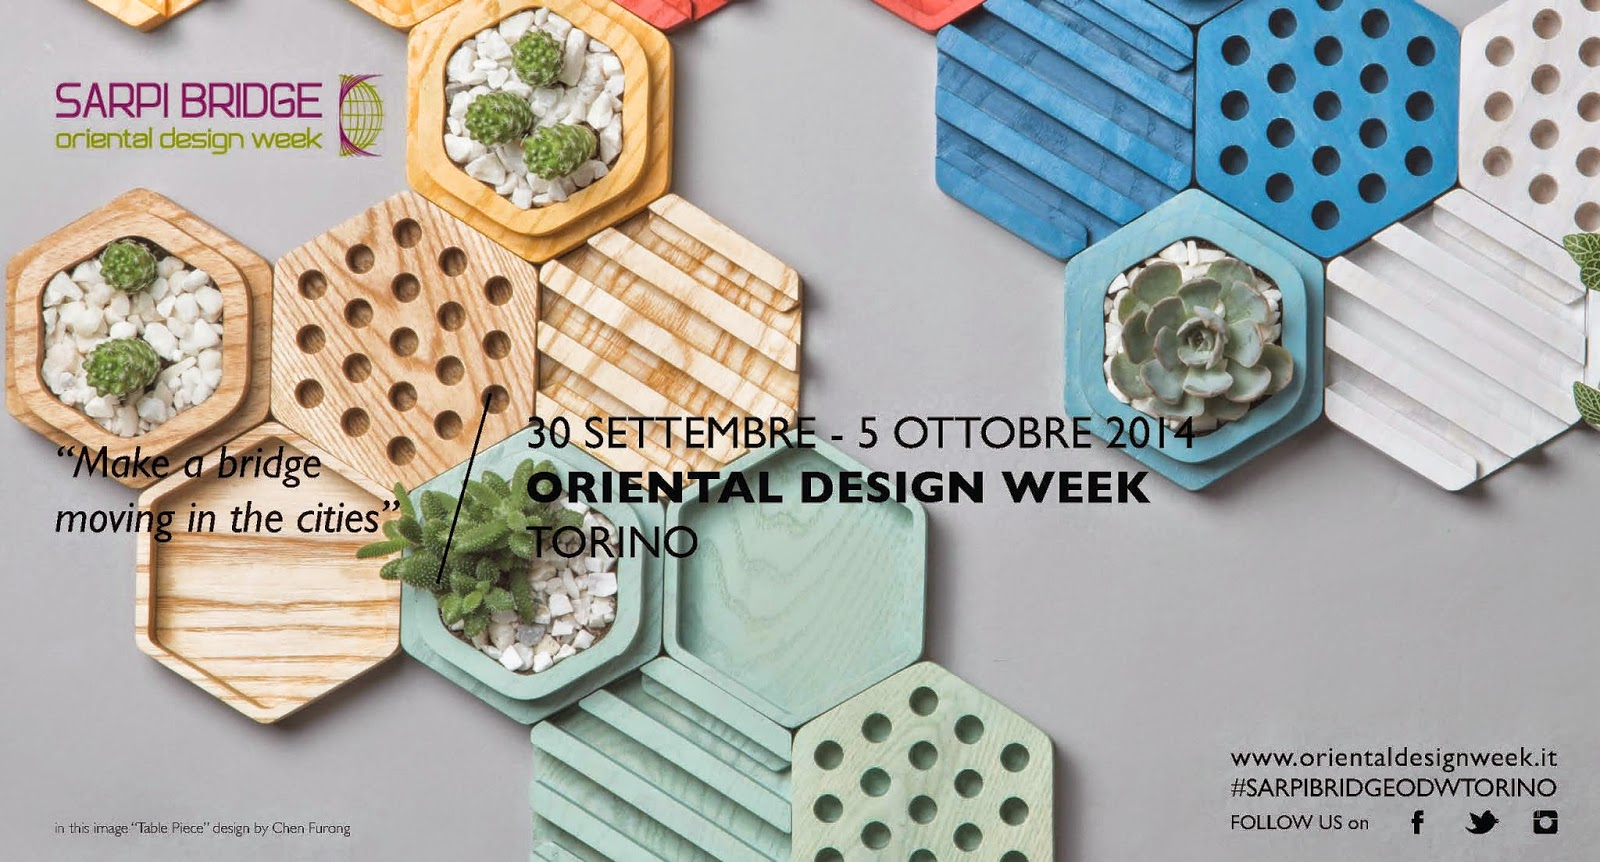 Sarpi Bridge U2022 Oriental Design Week Turin